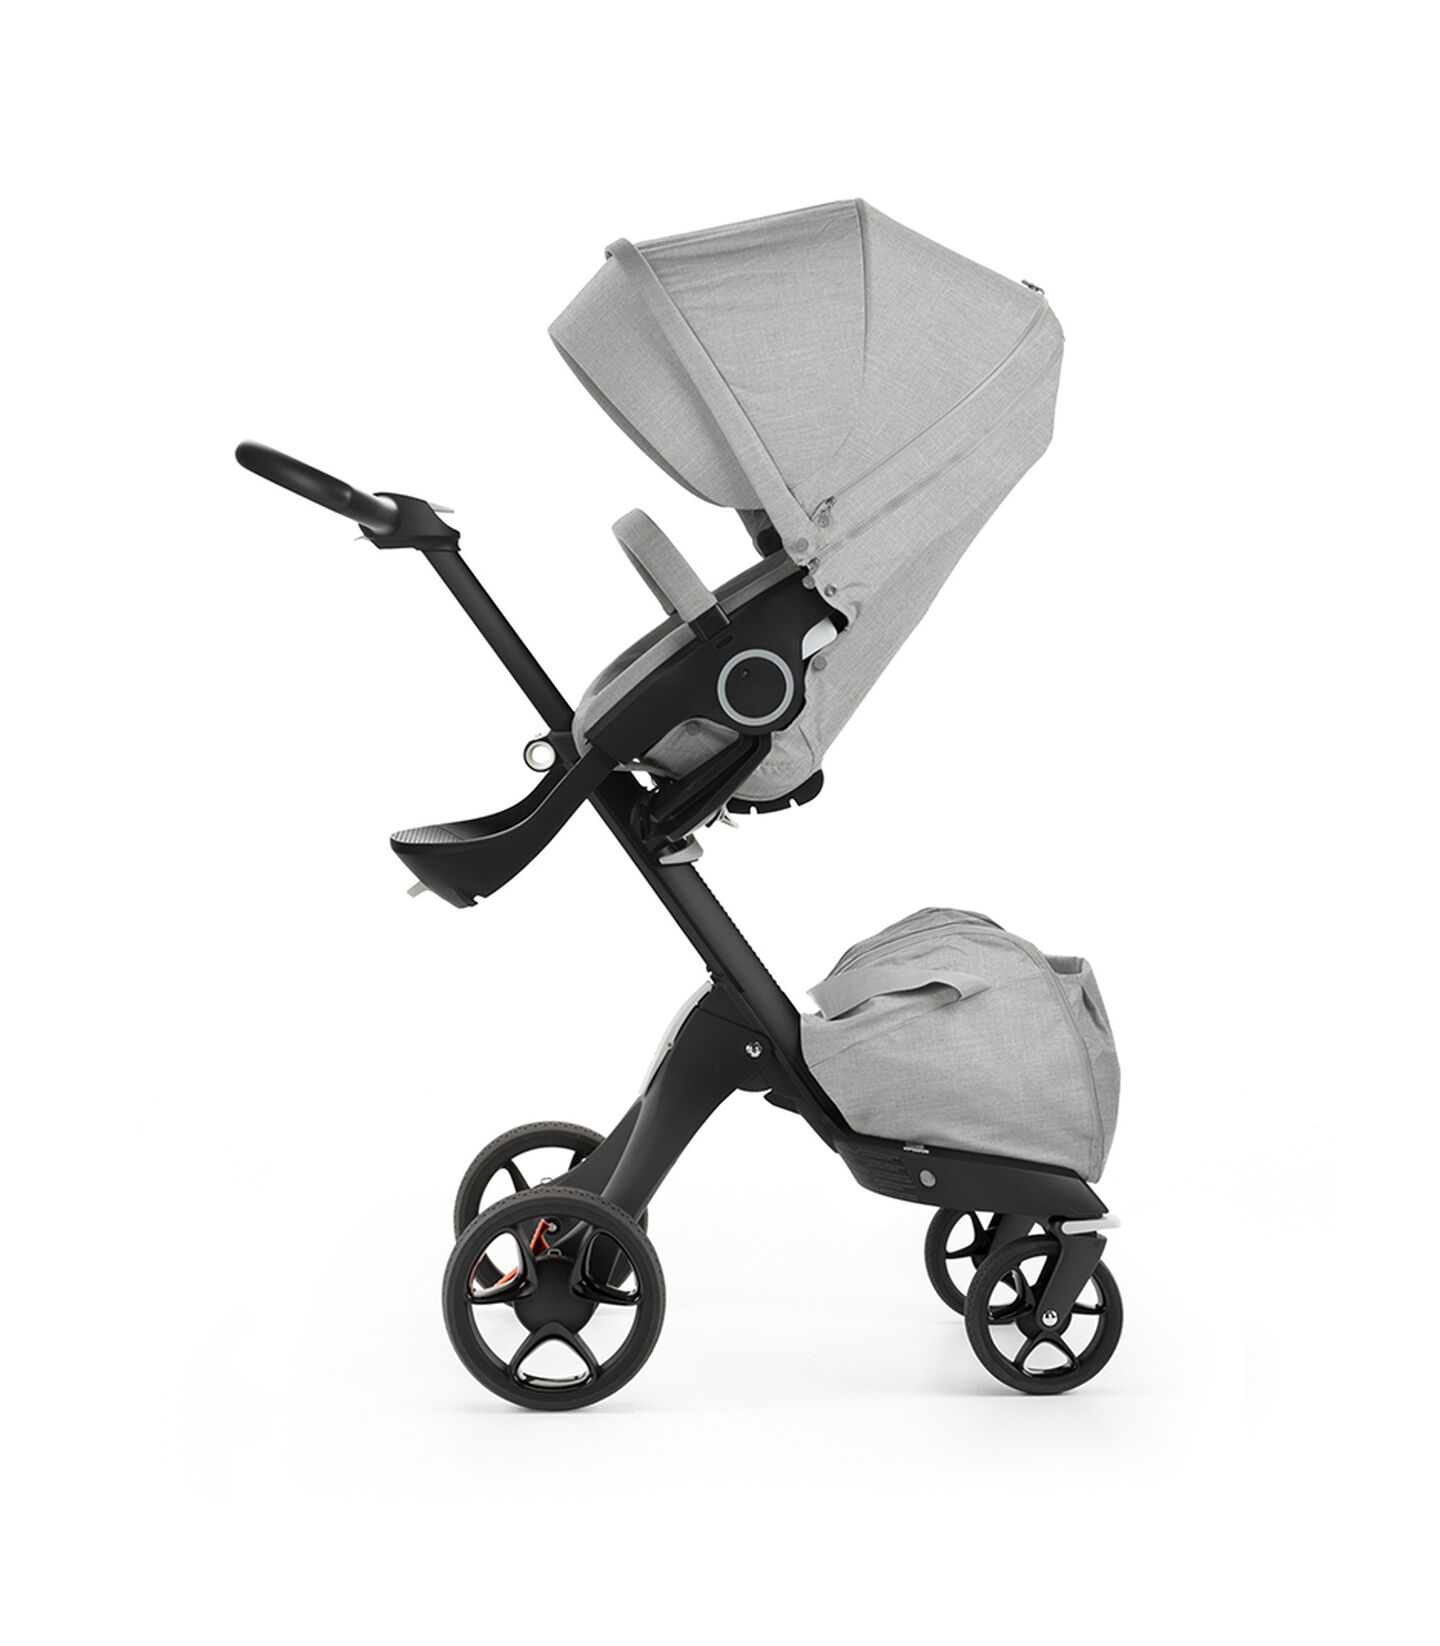 Stokke® Xplory® with Black chassis and Stokke® Stroller Seat, Red. New wheels 2016. view 2